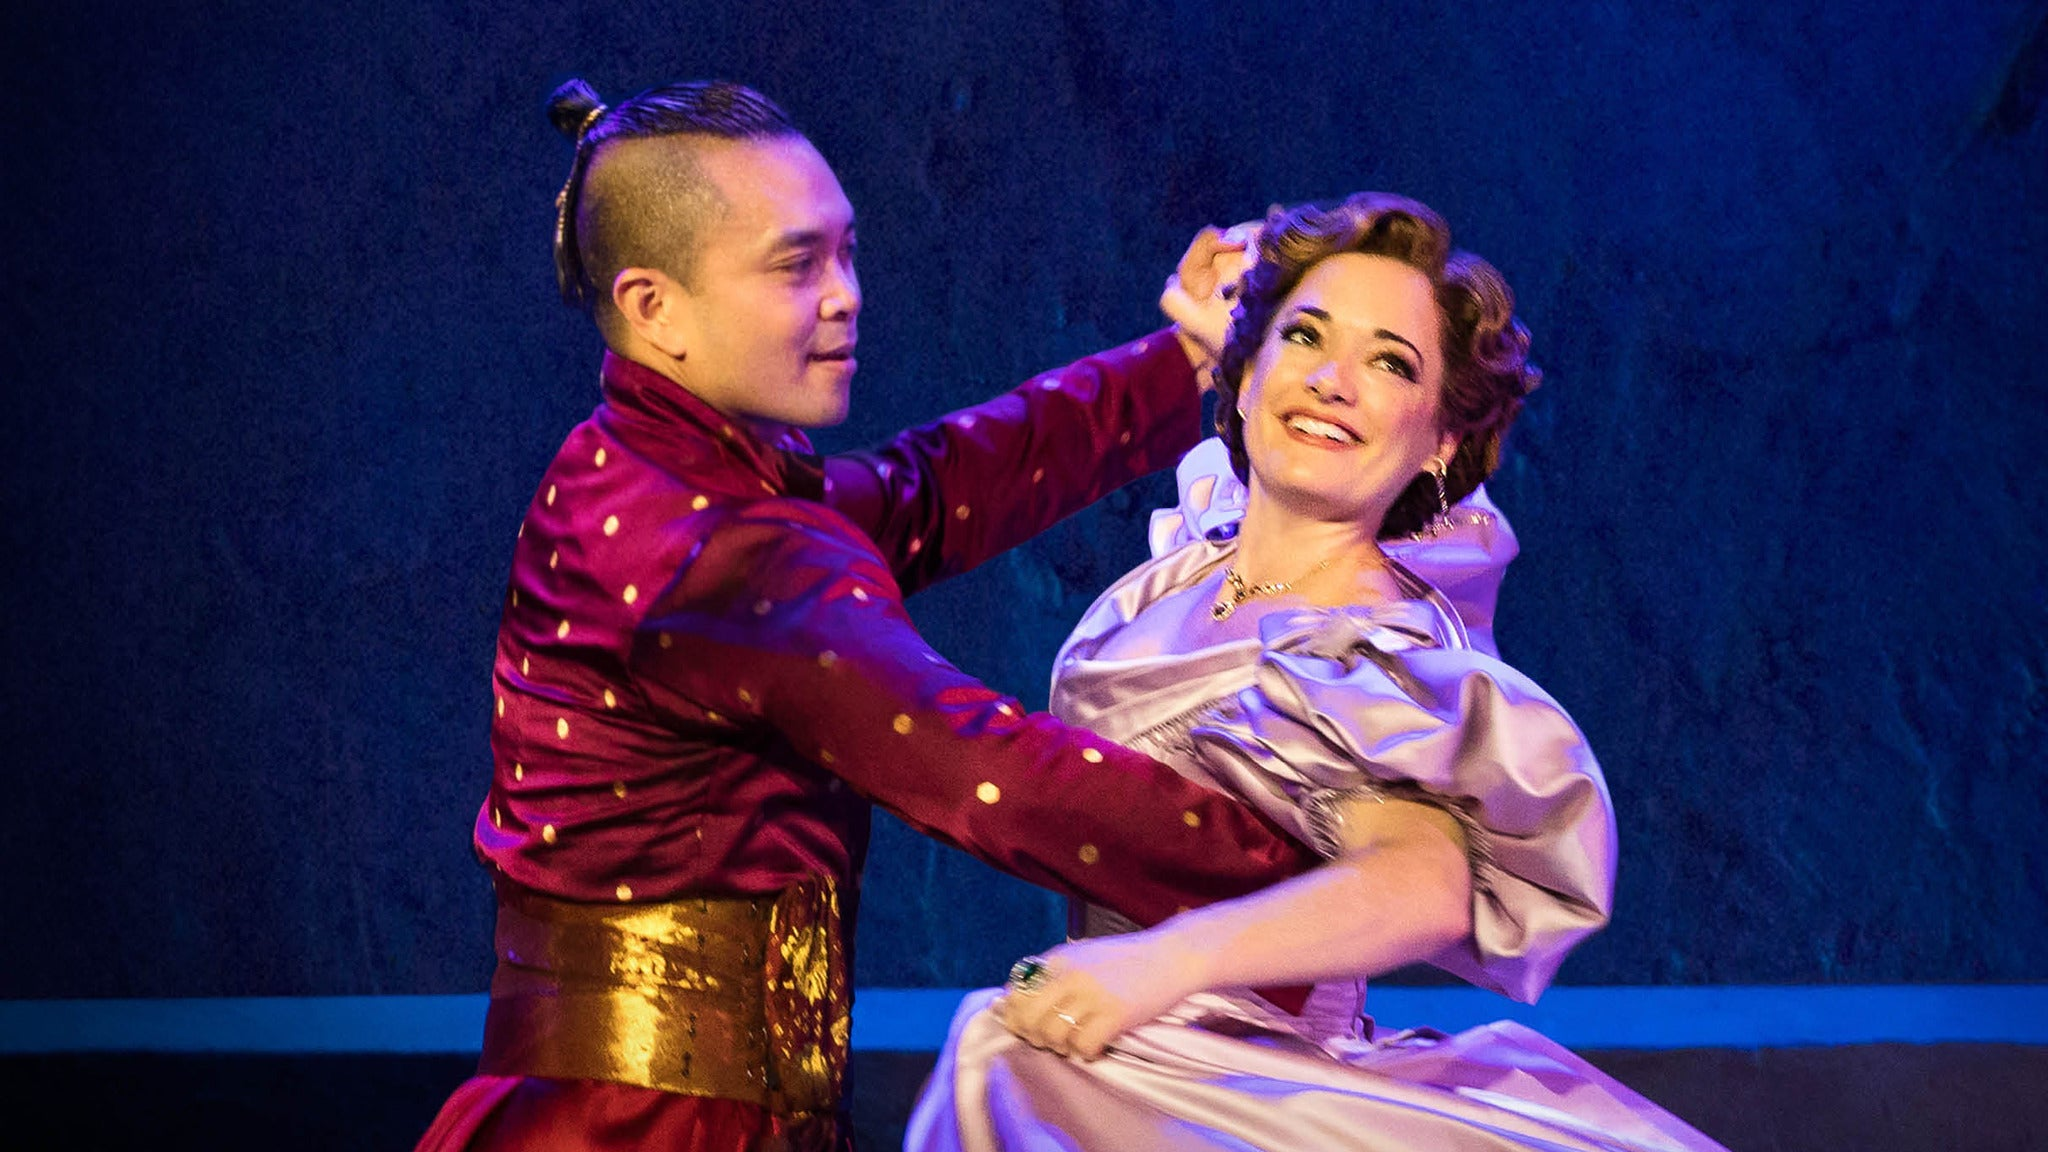 The King And I at Winspear Opera House